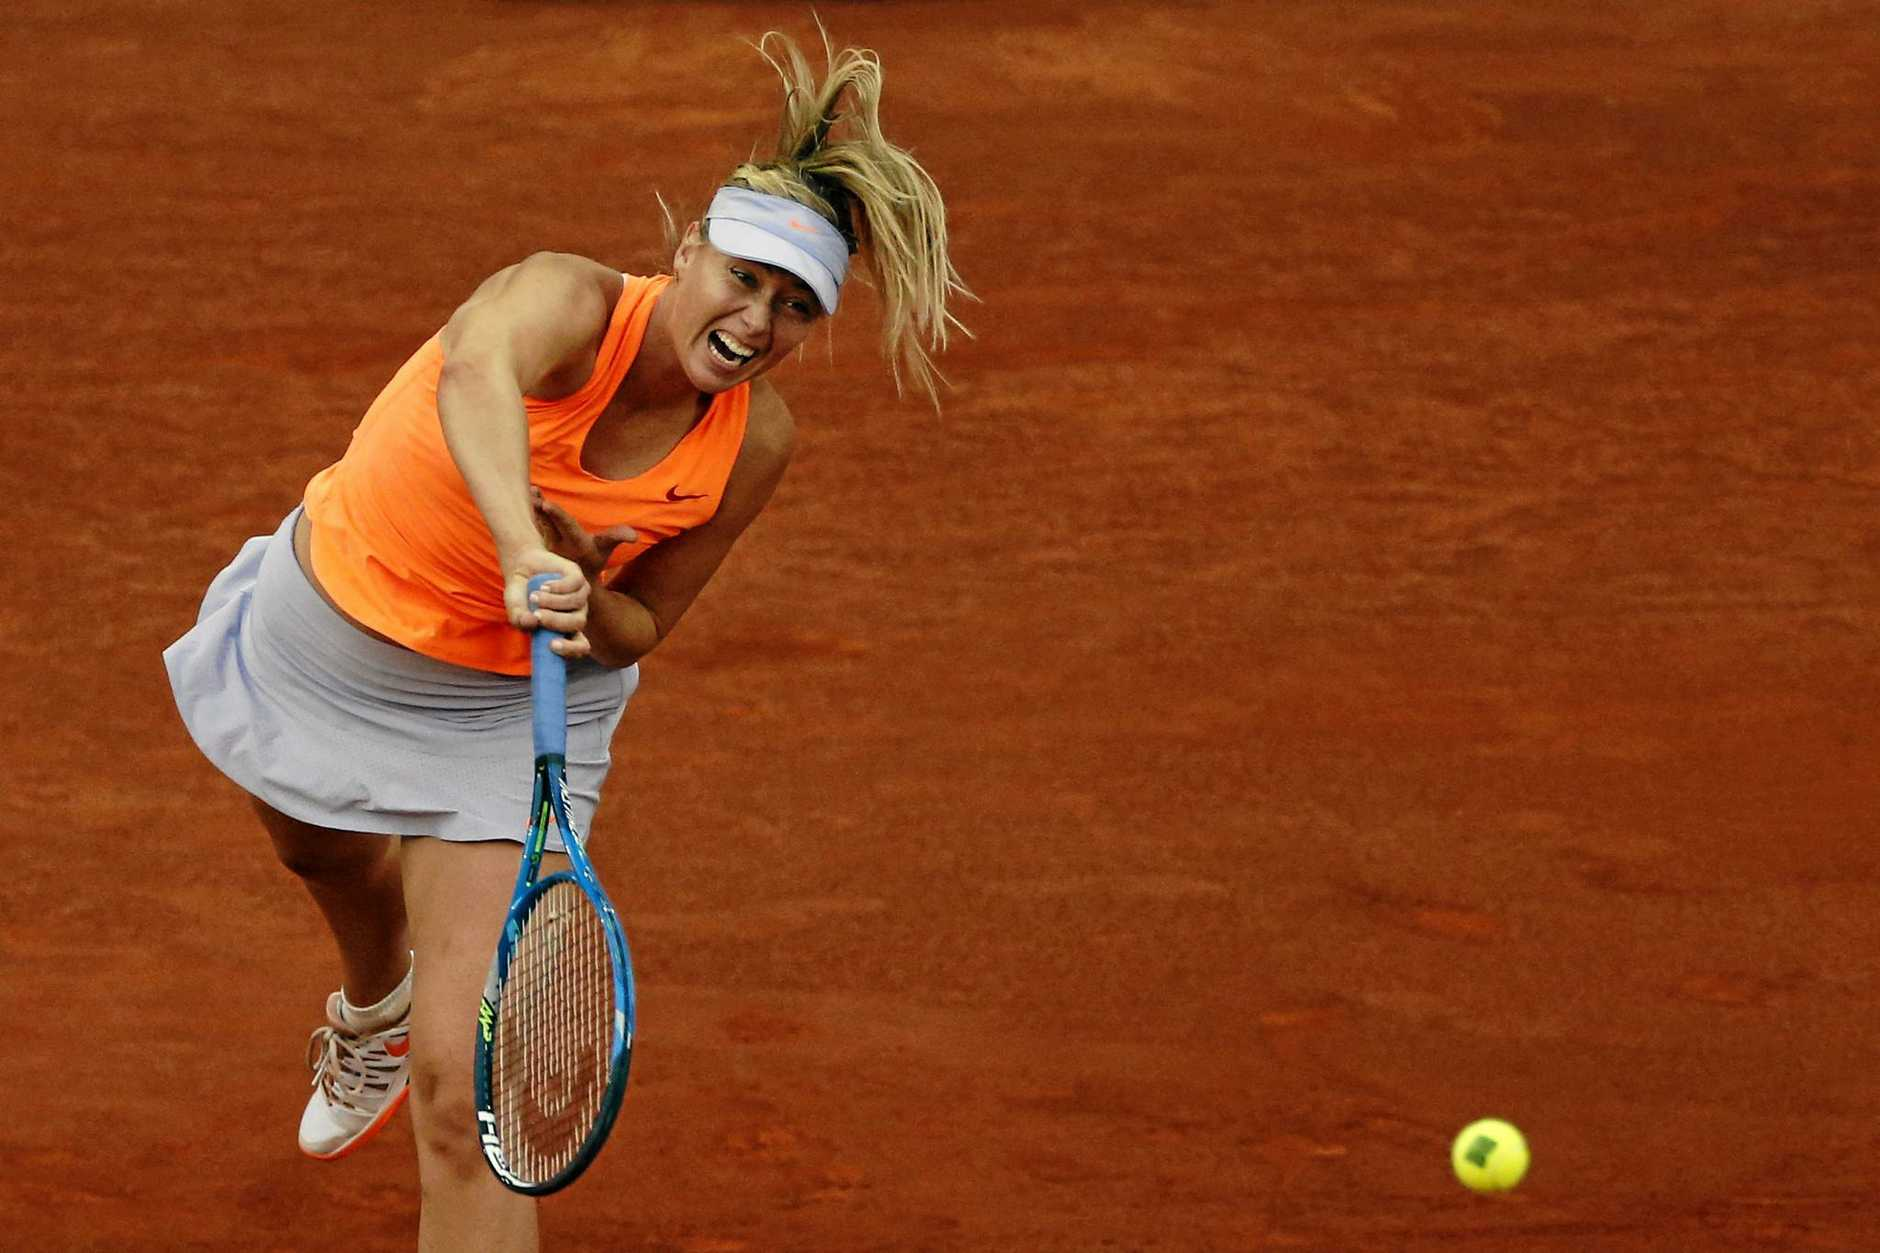 Sharapova in action during her second round match against Canada's Eugenie Bouchard at the Mutua Madrid Open